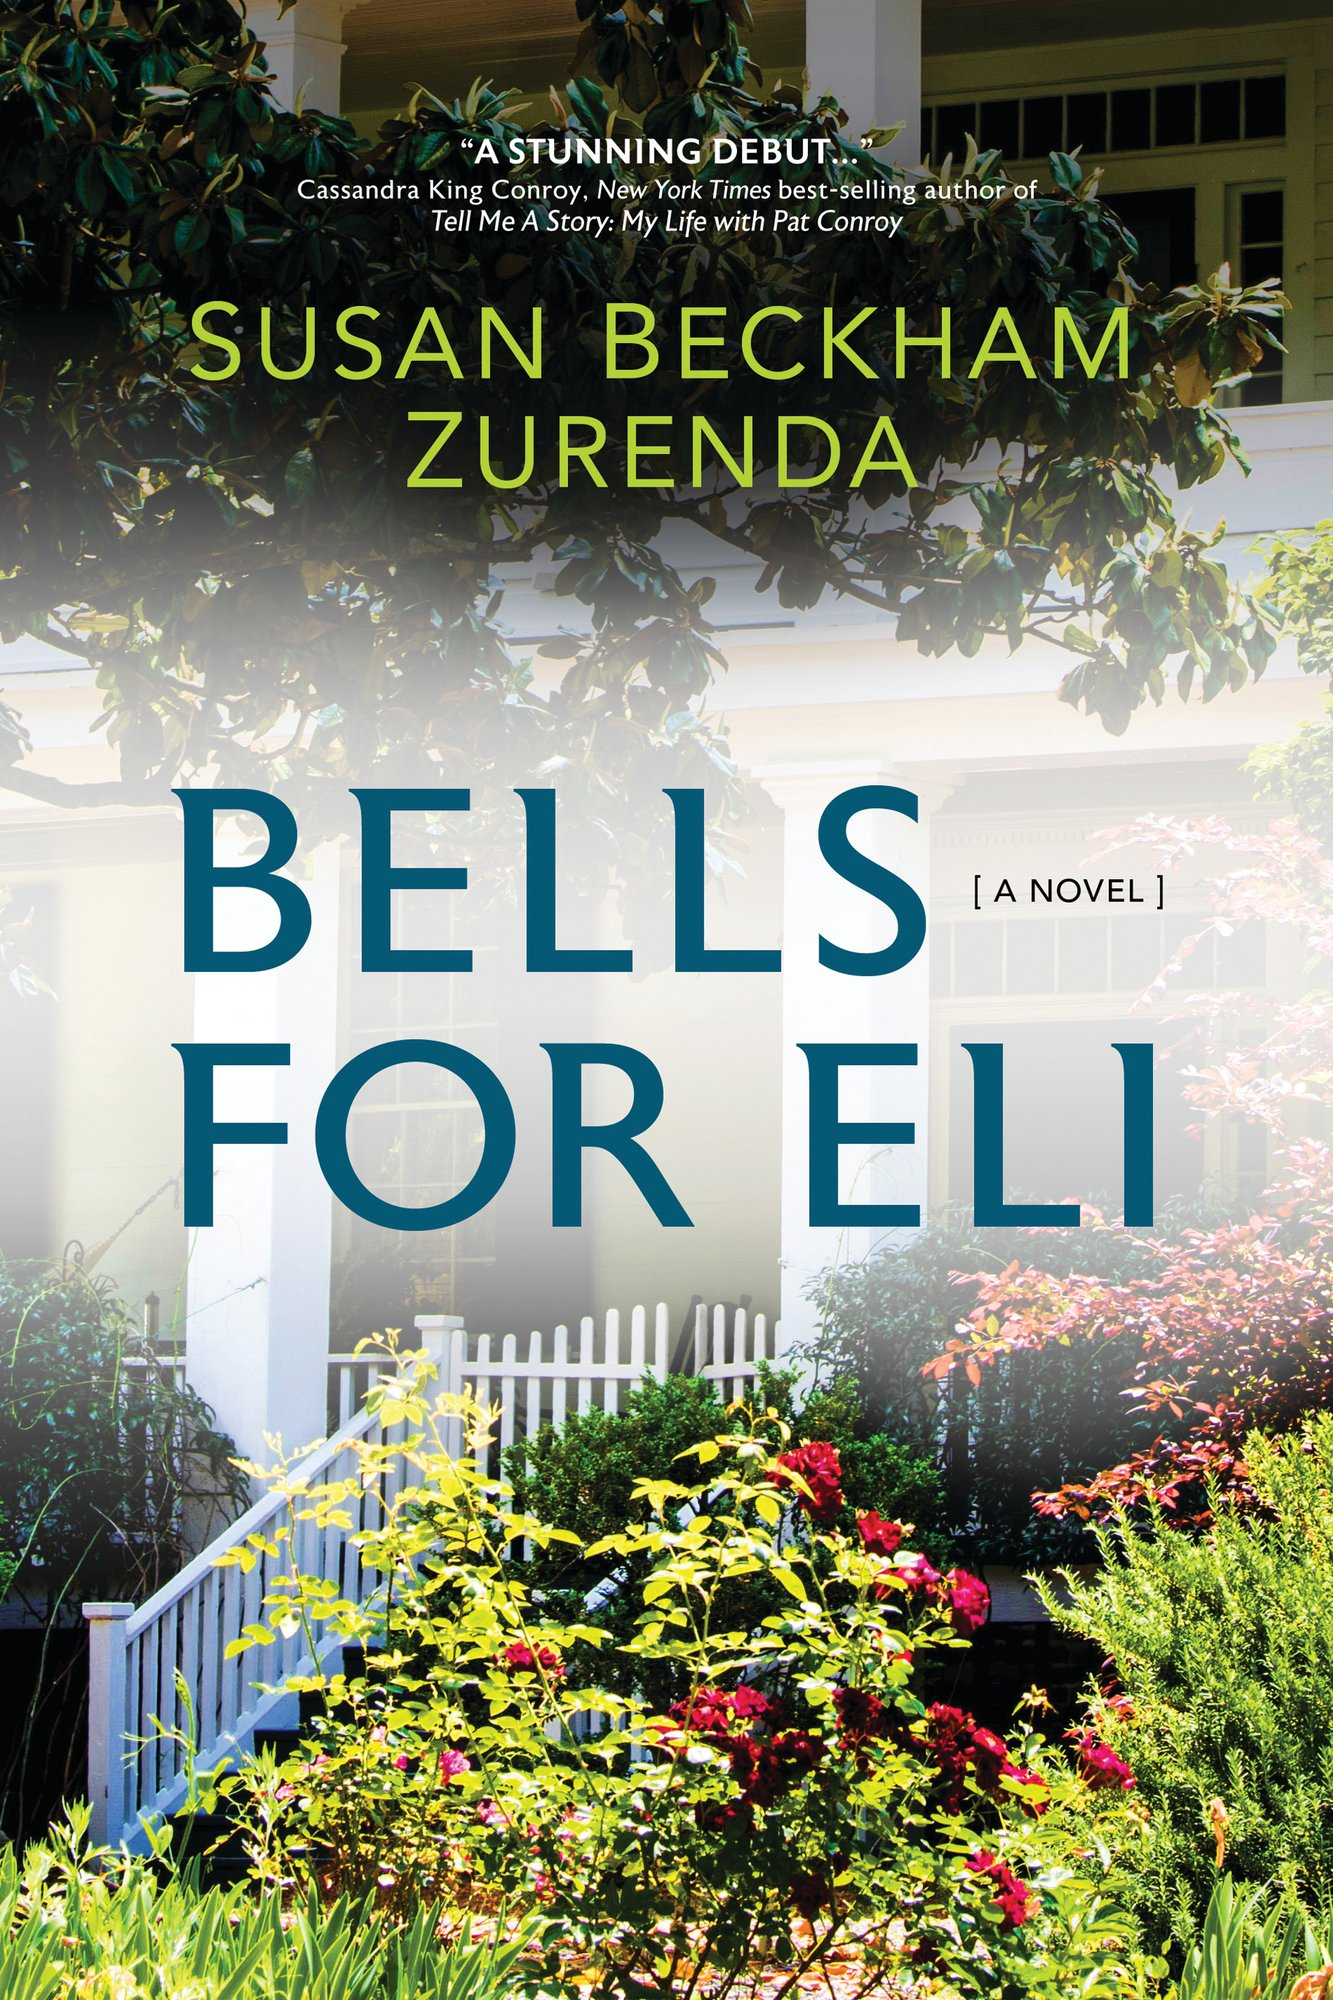 """Susan Beckham Zurenda will speak on the """"Small-town South in the 60's"""" in relation to circumstances and conflicts in her book, """"Bells for Eli,"""" at 6 p.m. Thursday at the Sumter County Museum."""